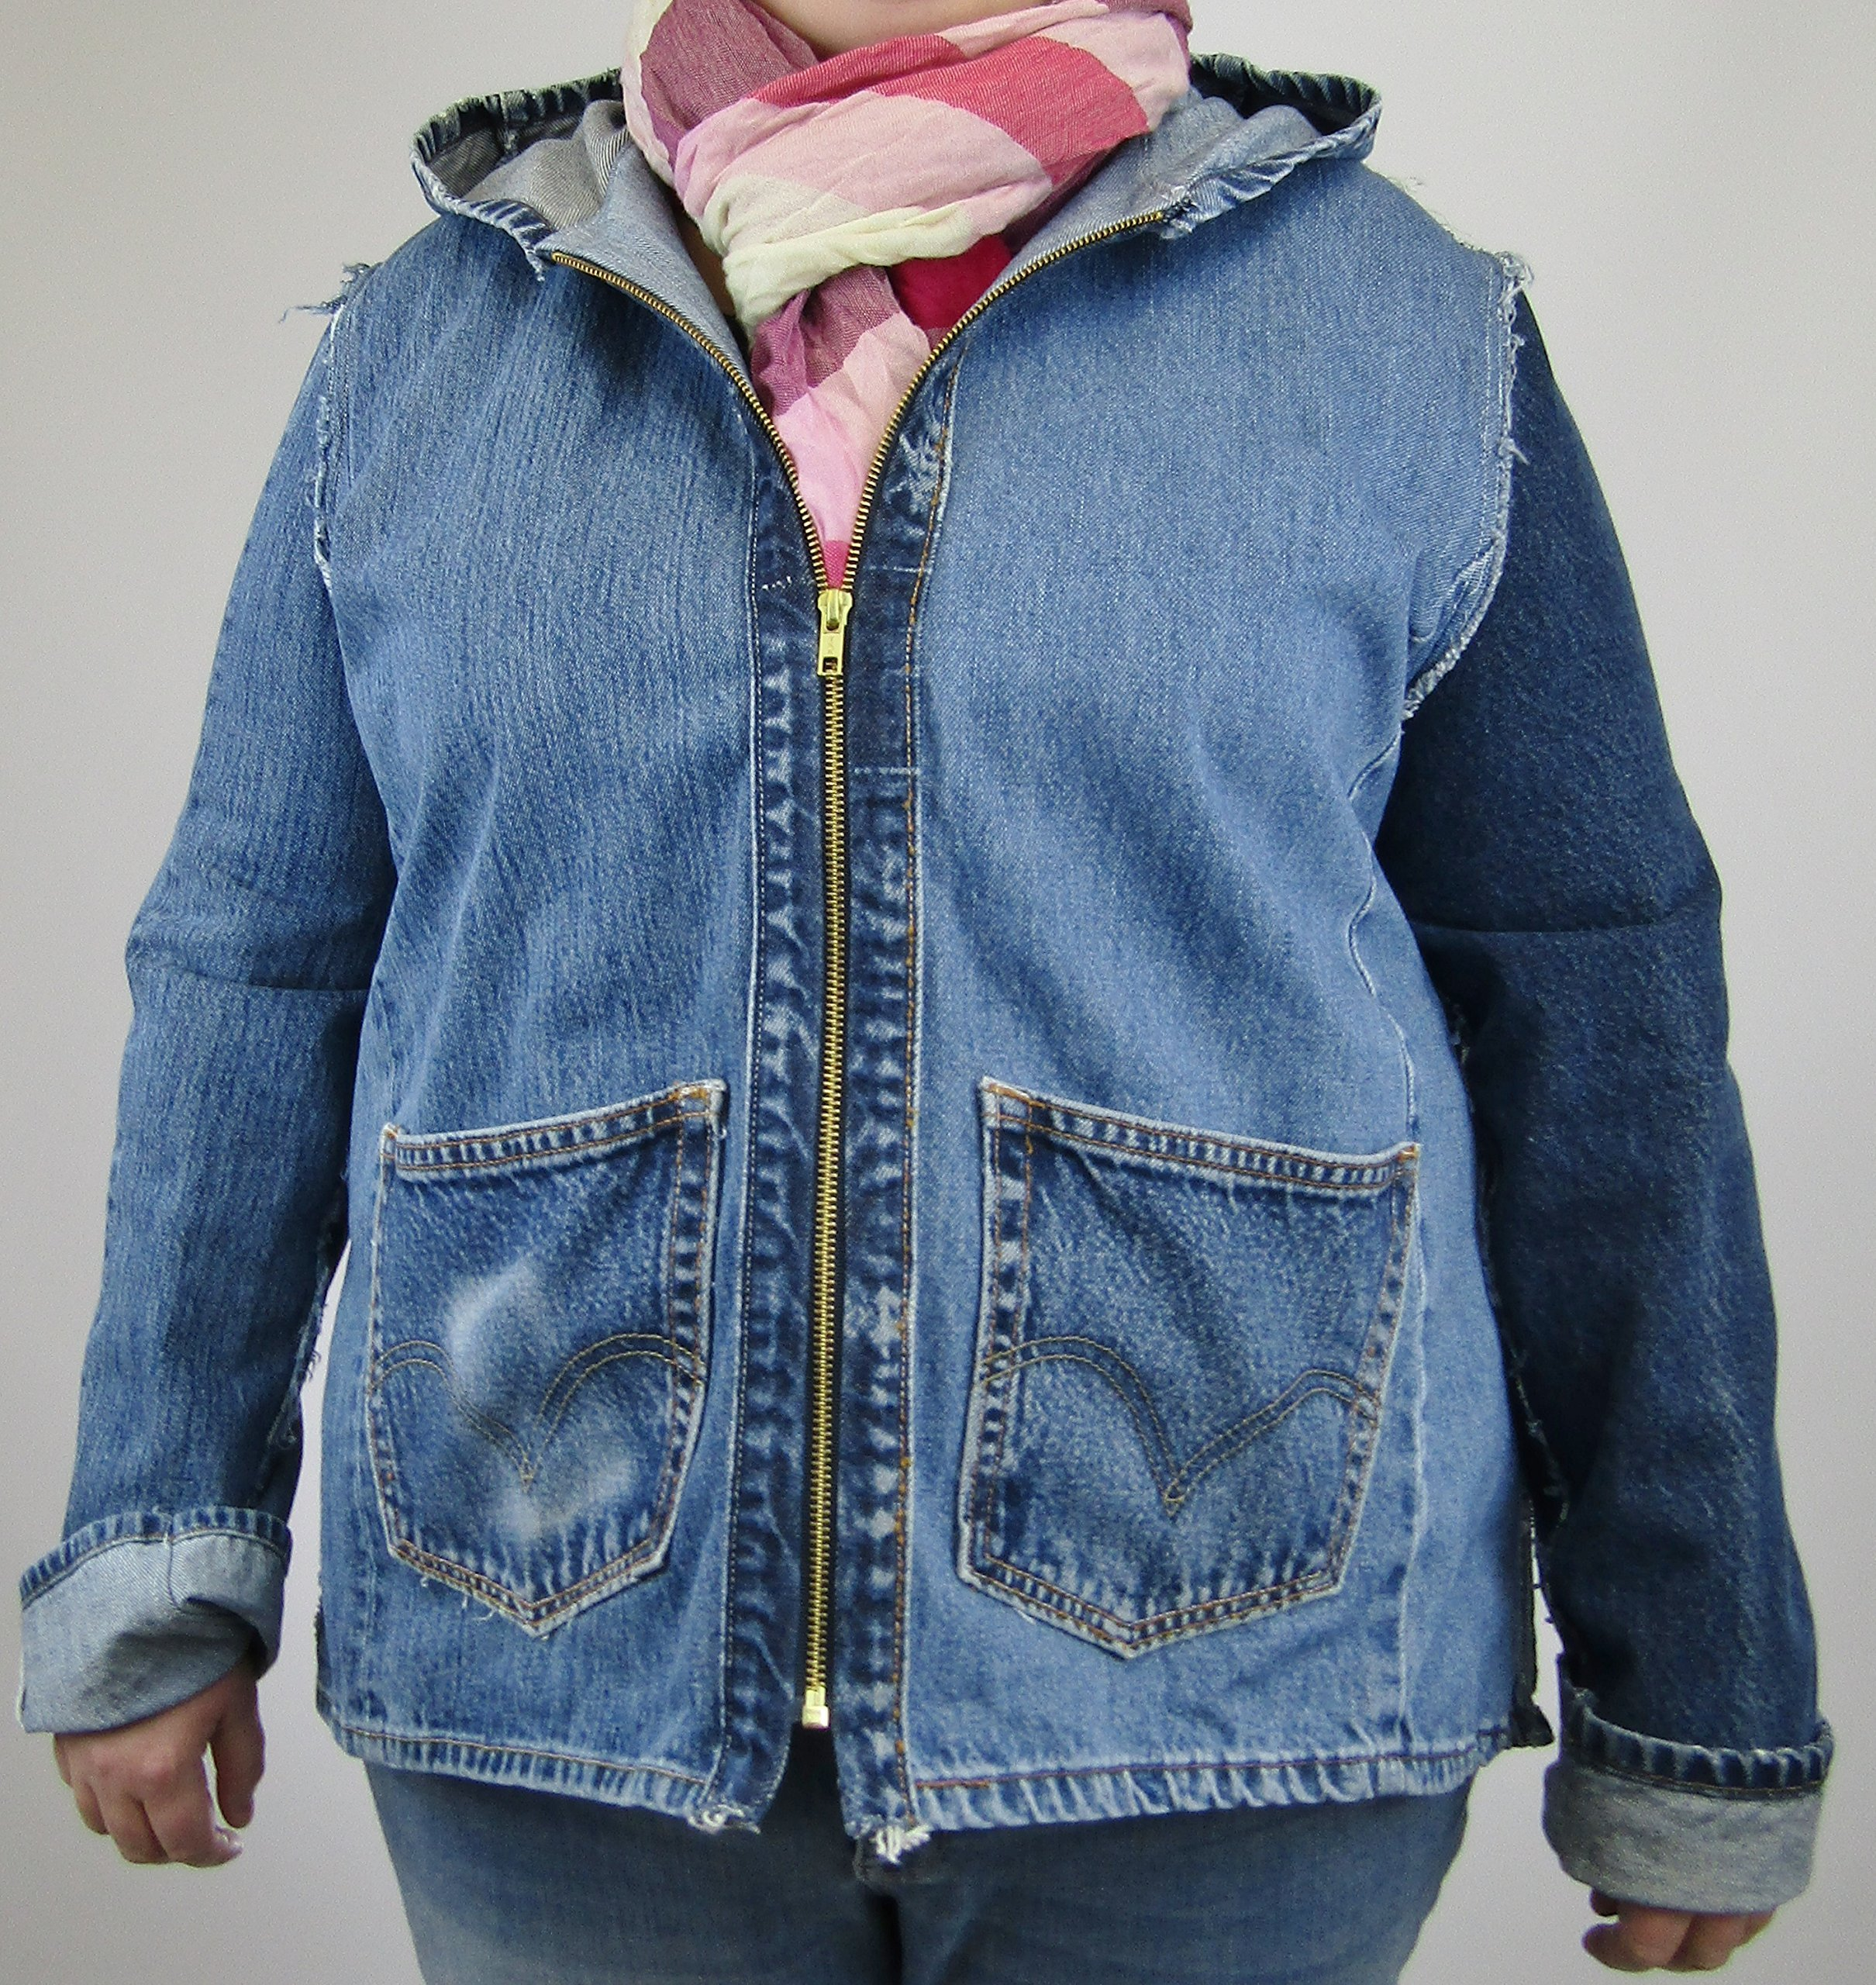 Hooded Denim Jacket XL made from 4 pair of reconstructed blue jeans